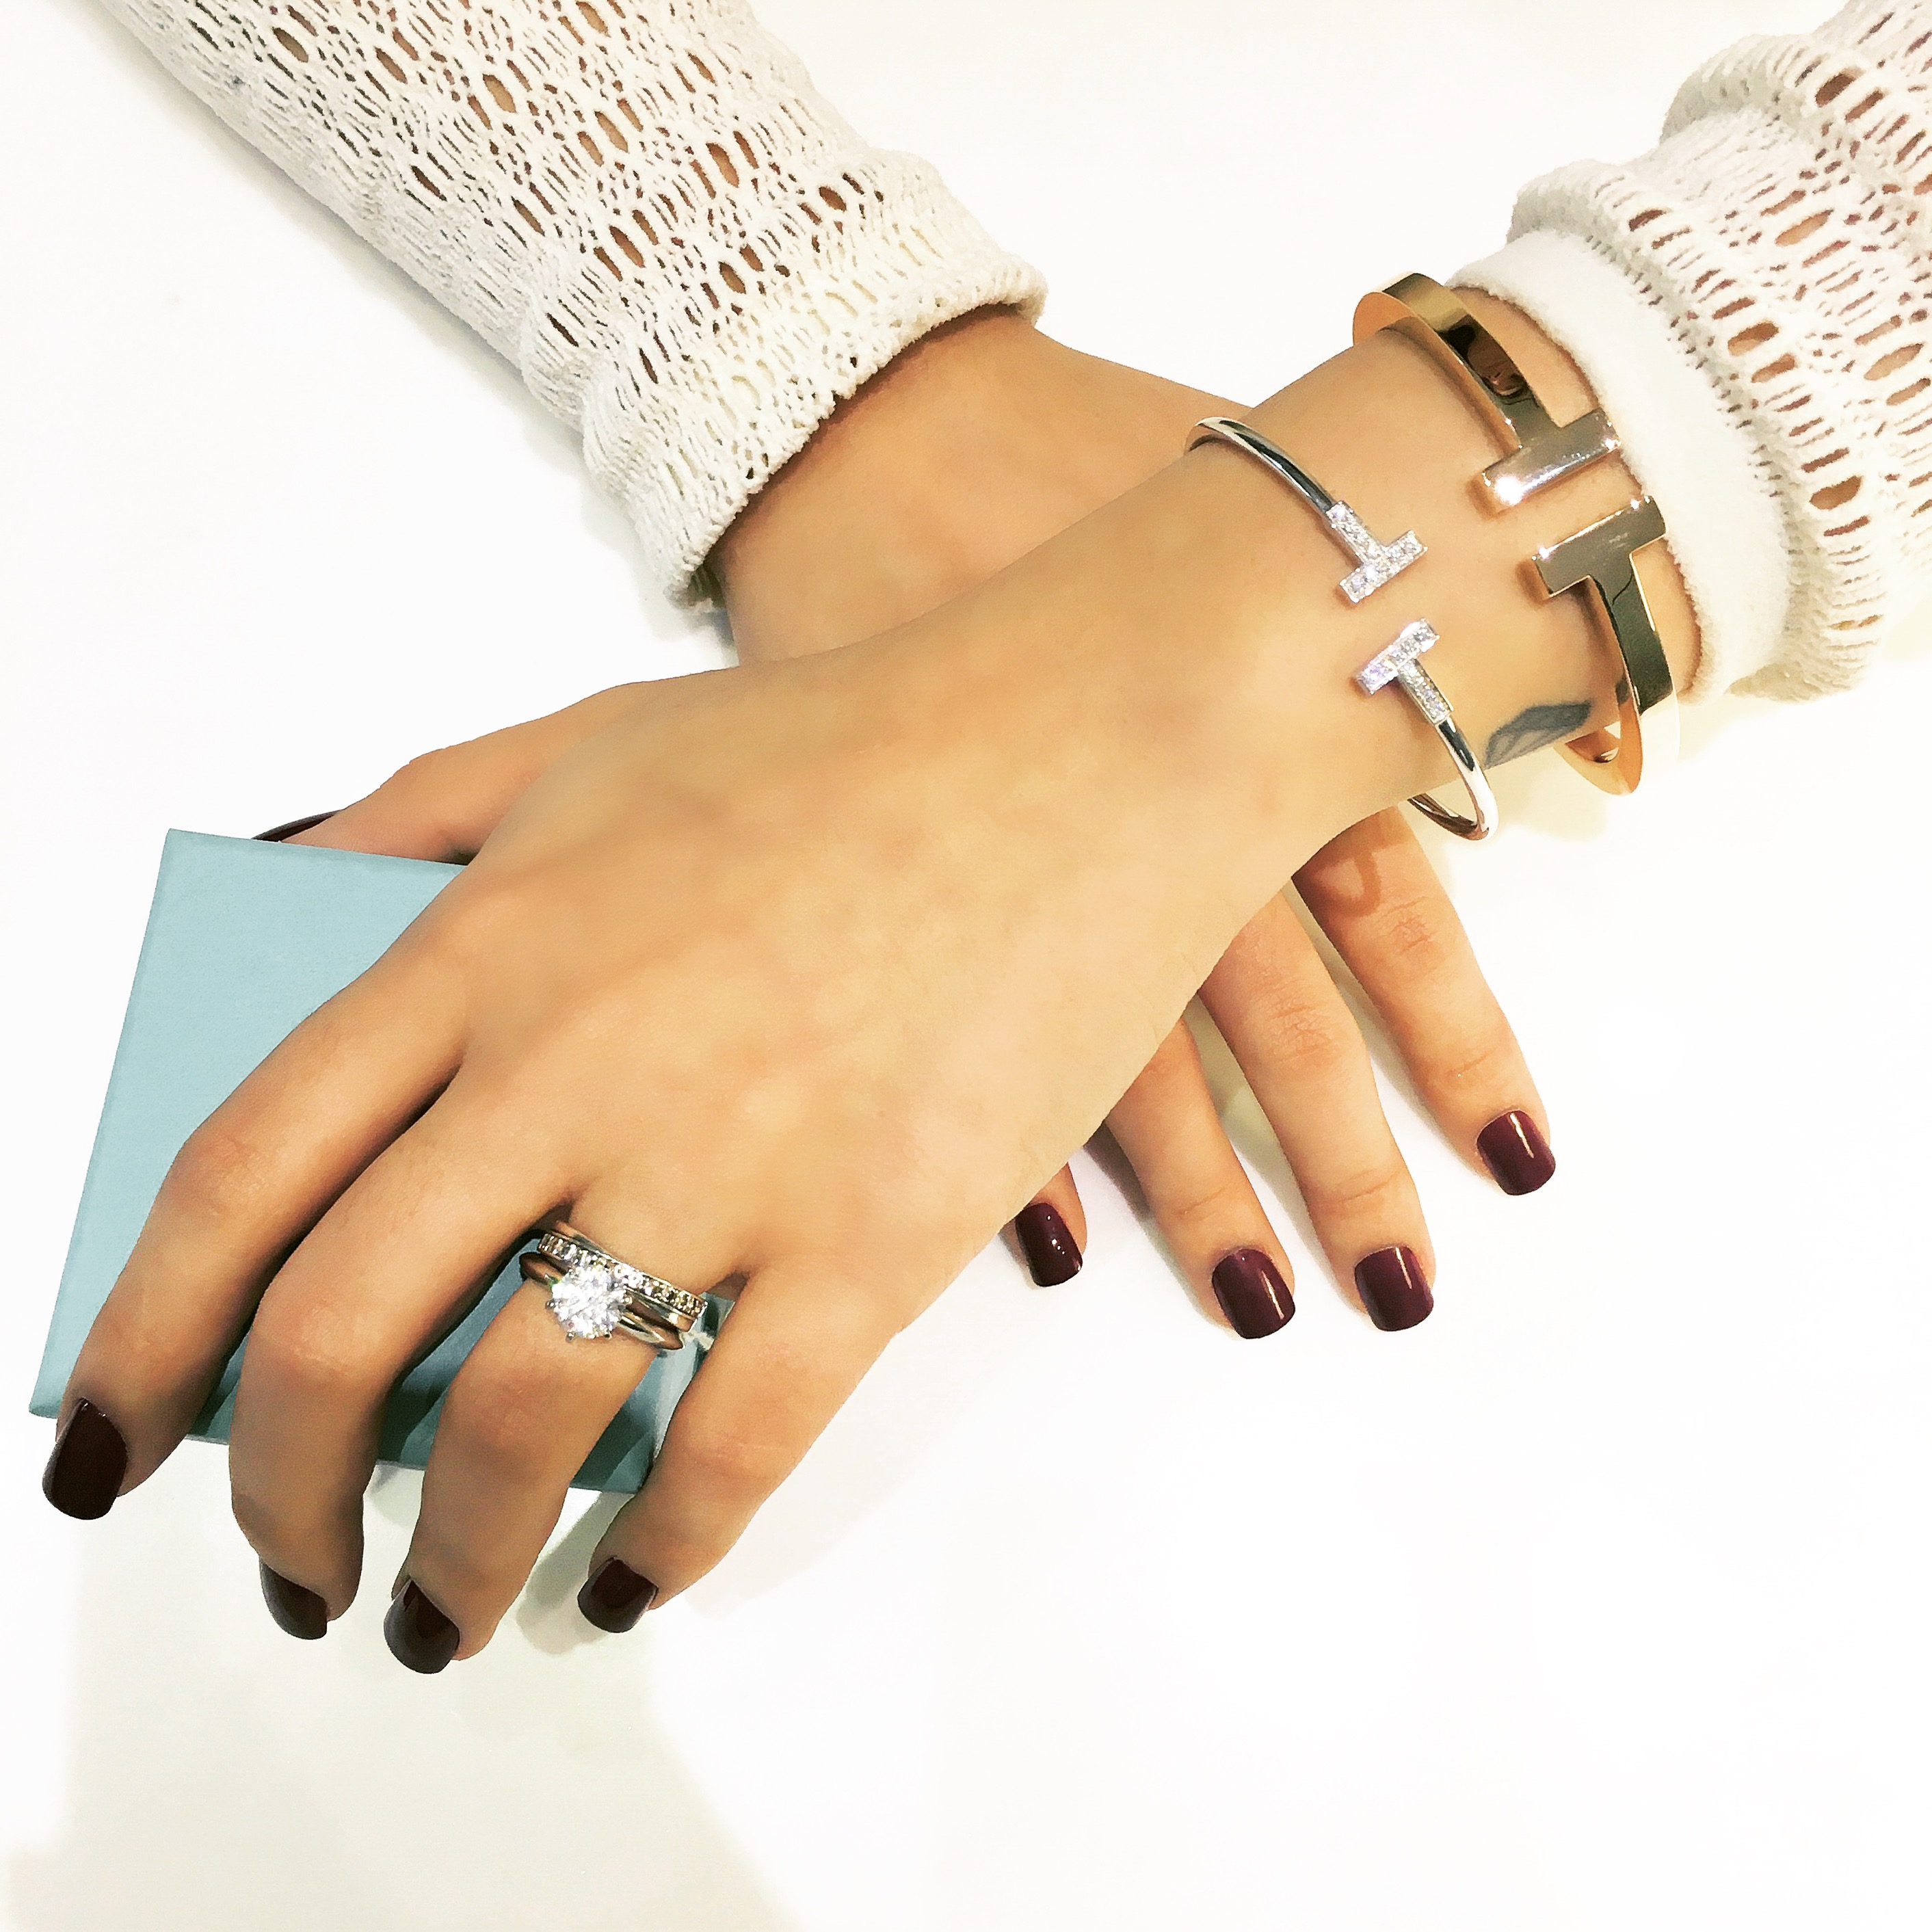 get-the-look-tiffany-pbfw-hands